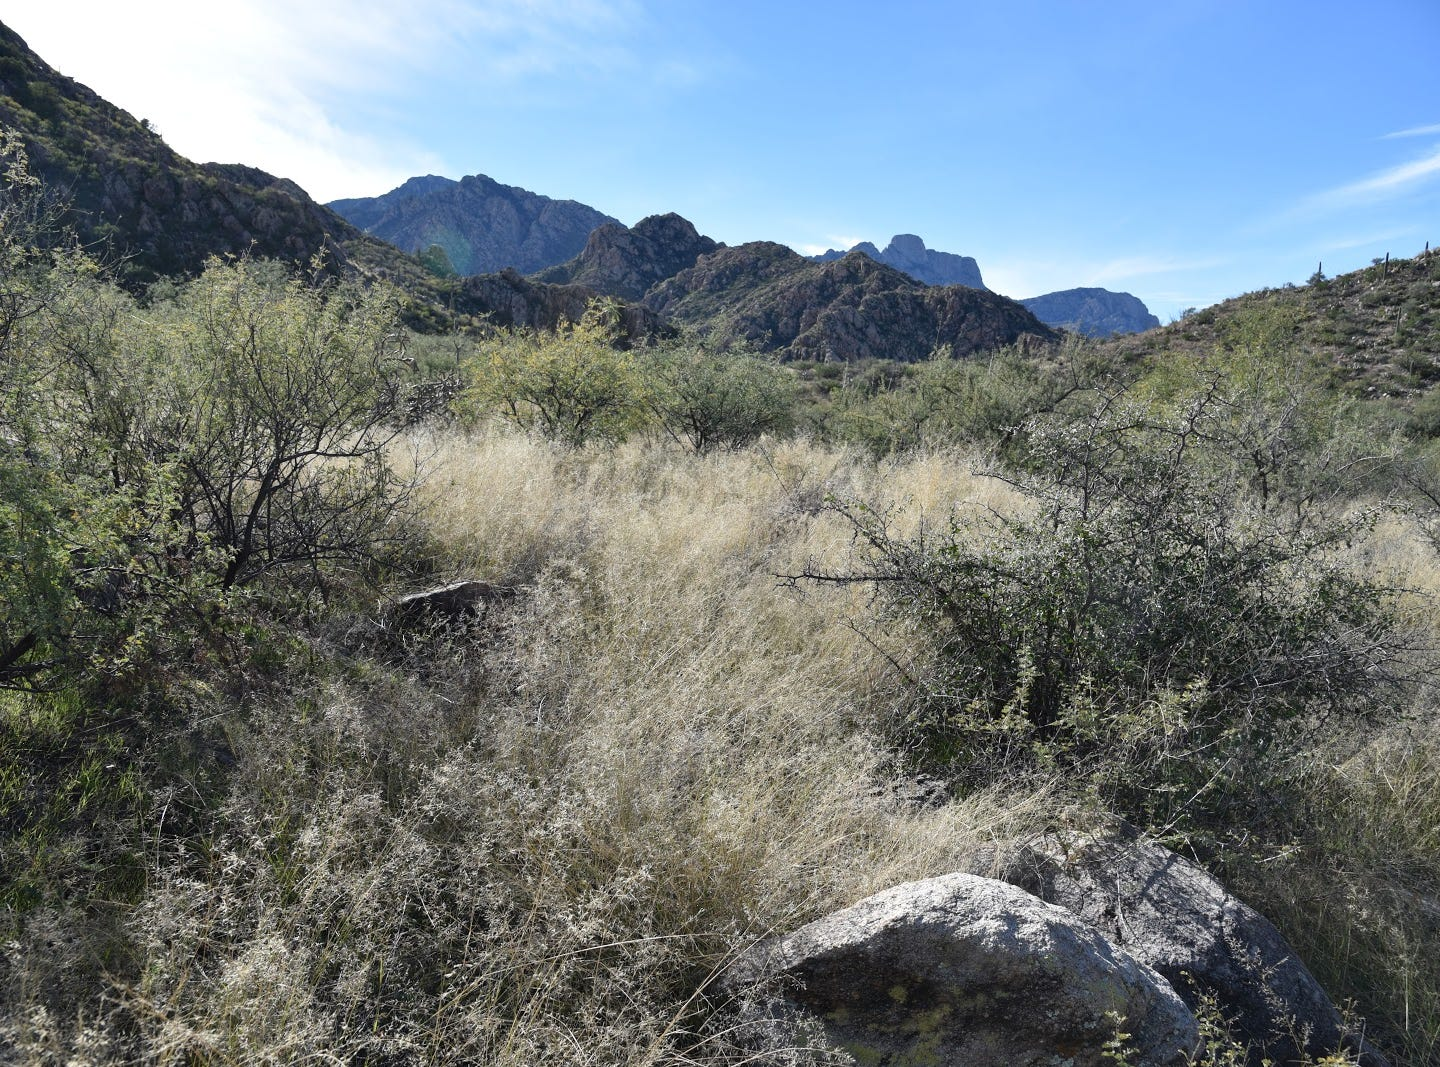 Views of Pusch Ridge and the Santa Catalina Mountains from the Sutherland Trail.